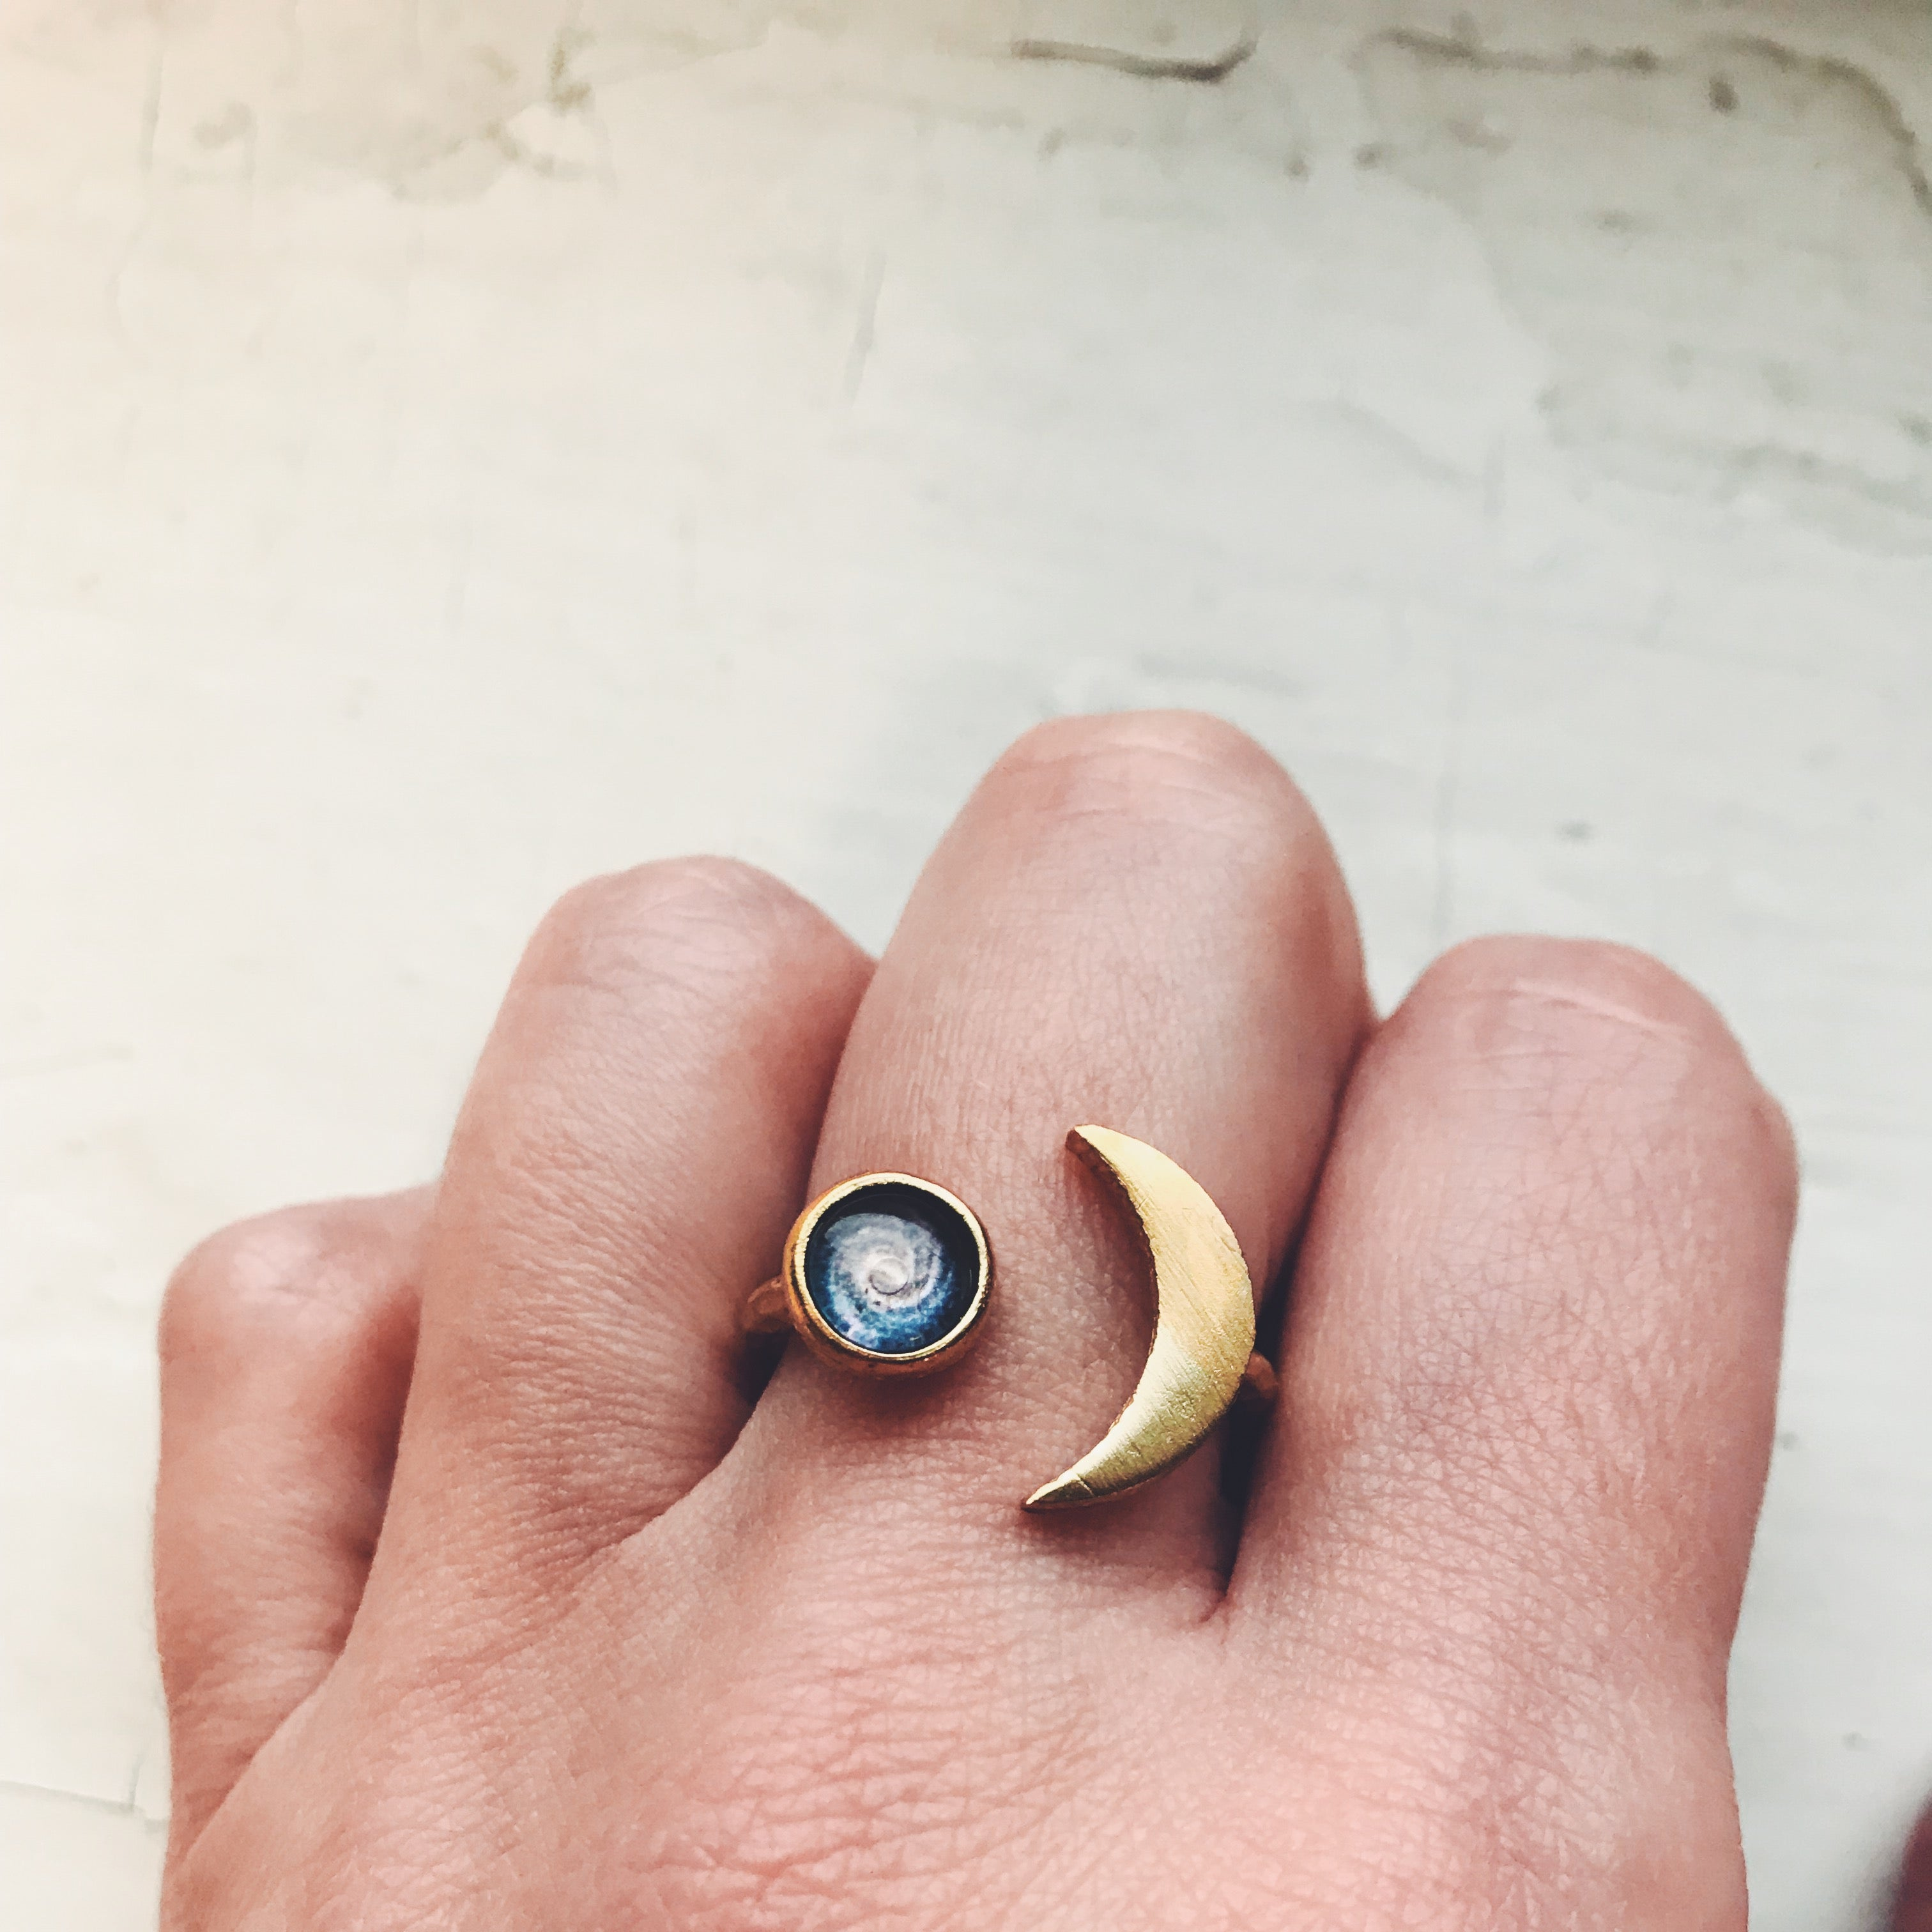 Adjustable crescent moon shaped ring in gold or silver with galaxy image of your choice - Choose your nebula, planet, moon, sun - Unique statement outer space jewelry, handmade by Yugen Tribe